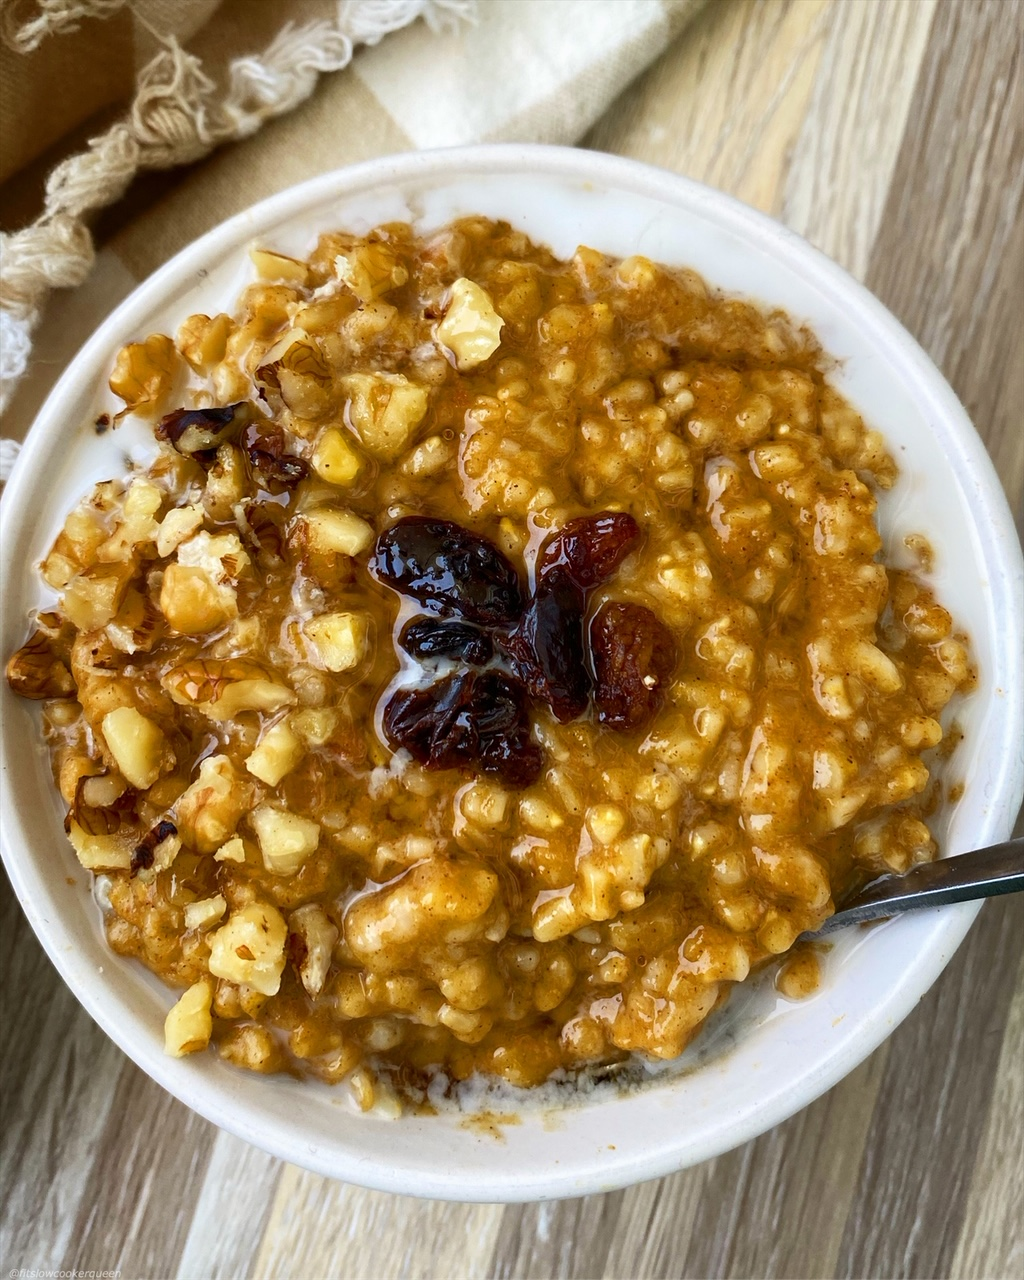 side, close up view of pumpkin oatmeal in a white bowl with raisins on top, almond milk, and a silver spoon